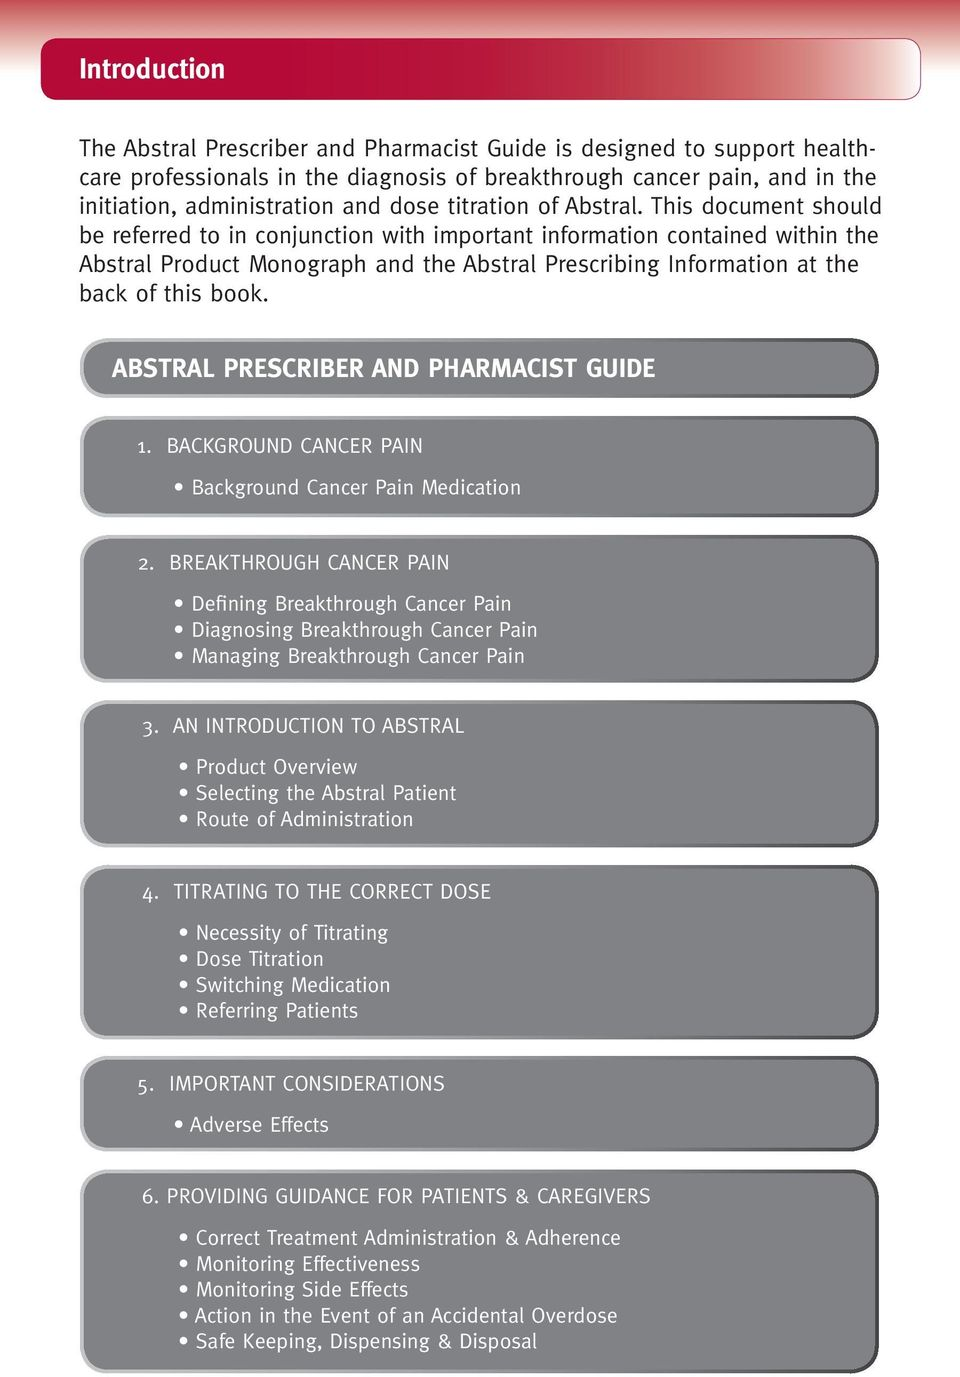 This document should be referred to in conjunction with important information contained within the Abstral Product Monograph and the Abstral Prescribing Information at the back of this book.